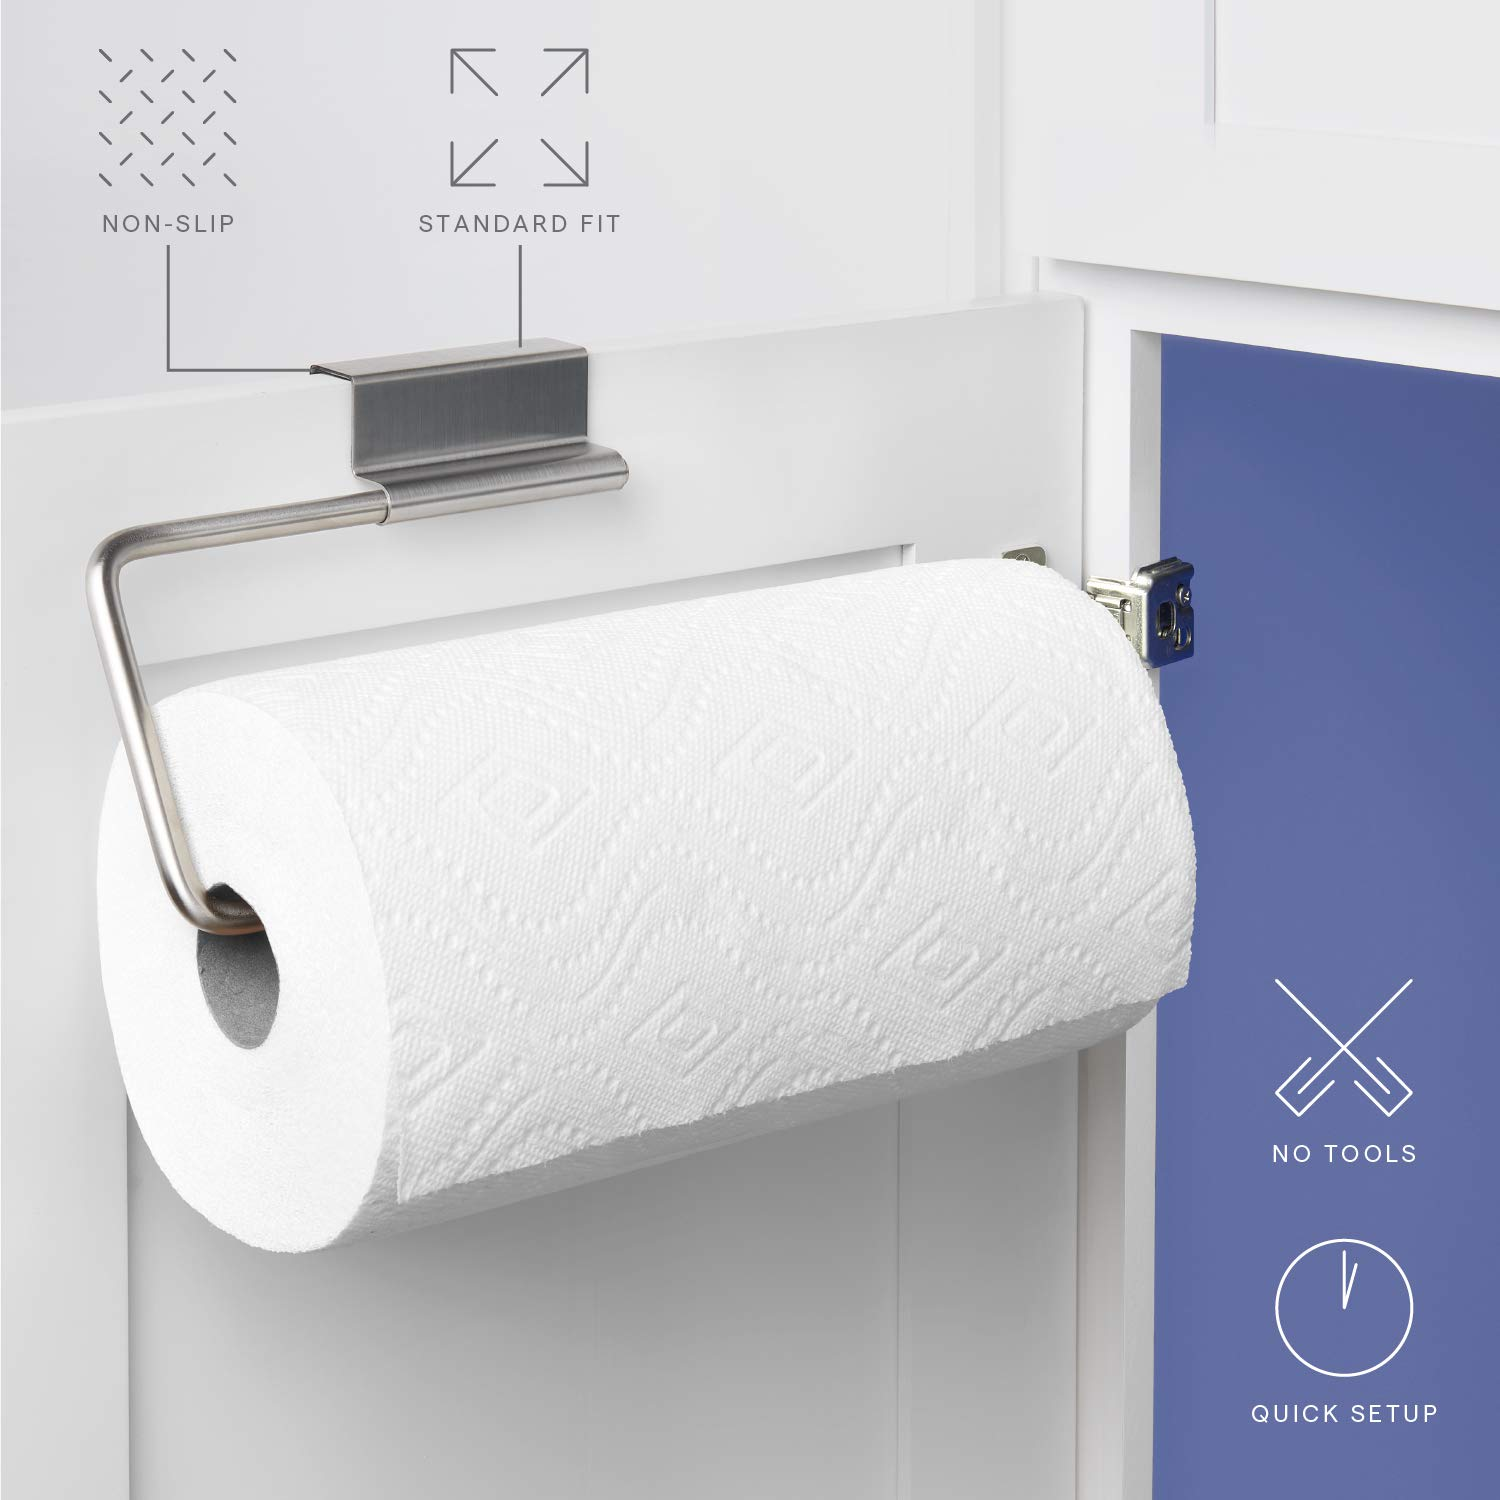 Merveilleux Amazon.com: YouCopia Over The Cabinet Door Stainless Steel Paper Towel Roll  Holder: Home U0026 Kitchen